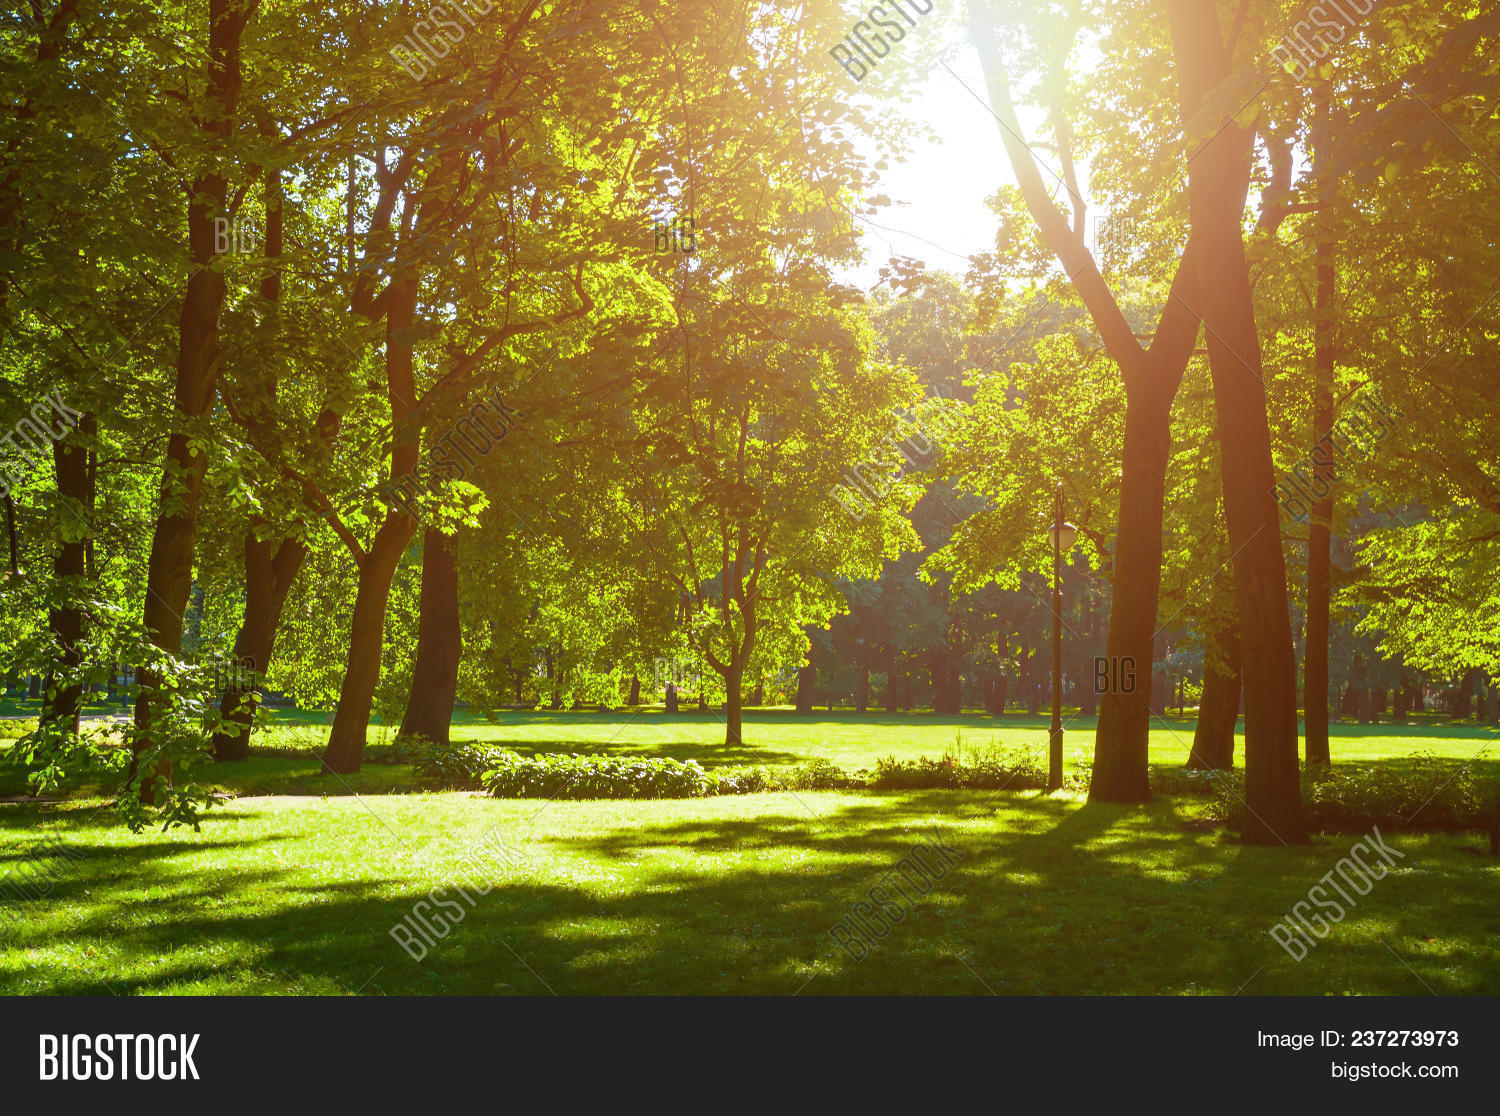 Summer landscape - colorful summer city park with deciduous green trees in sunny weather. Summer park trees lit by soft summer sunlight, colorful sunny summer park landscape scene. Summer day in the city summer park